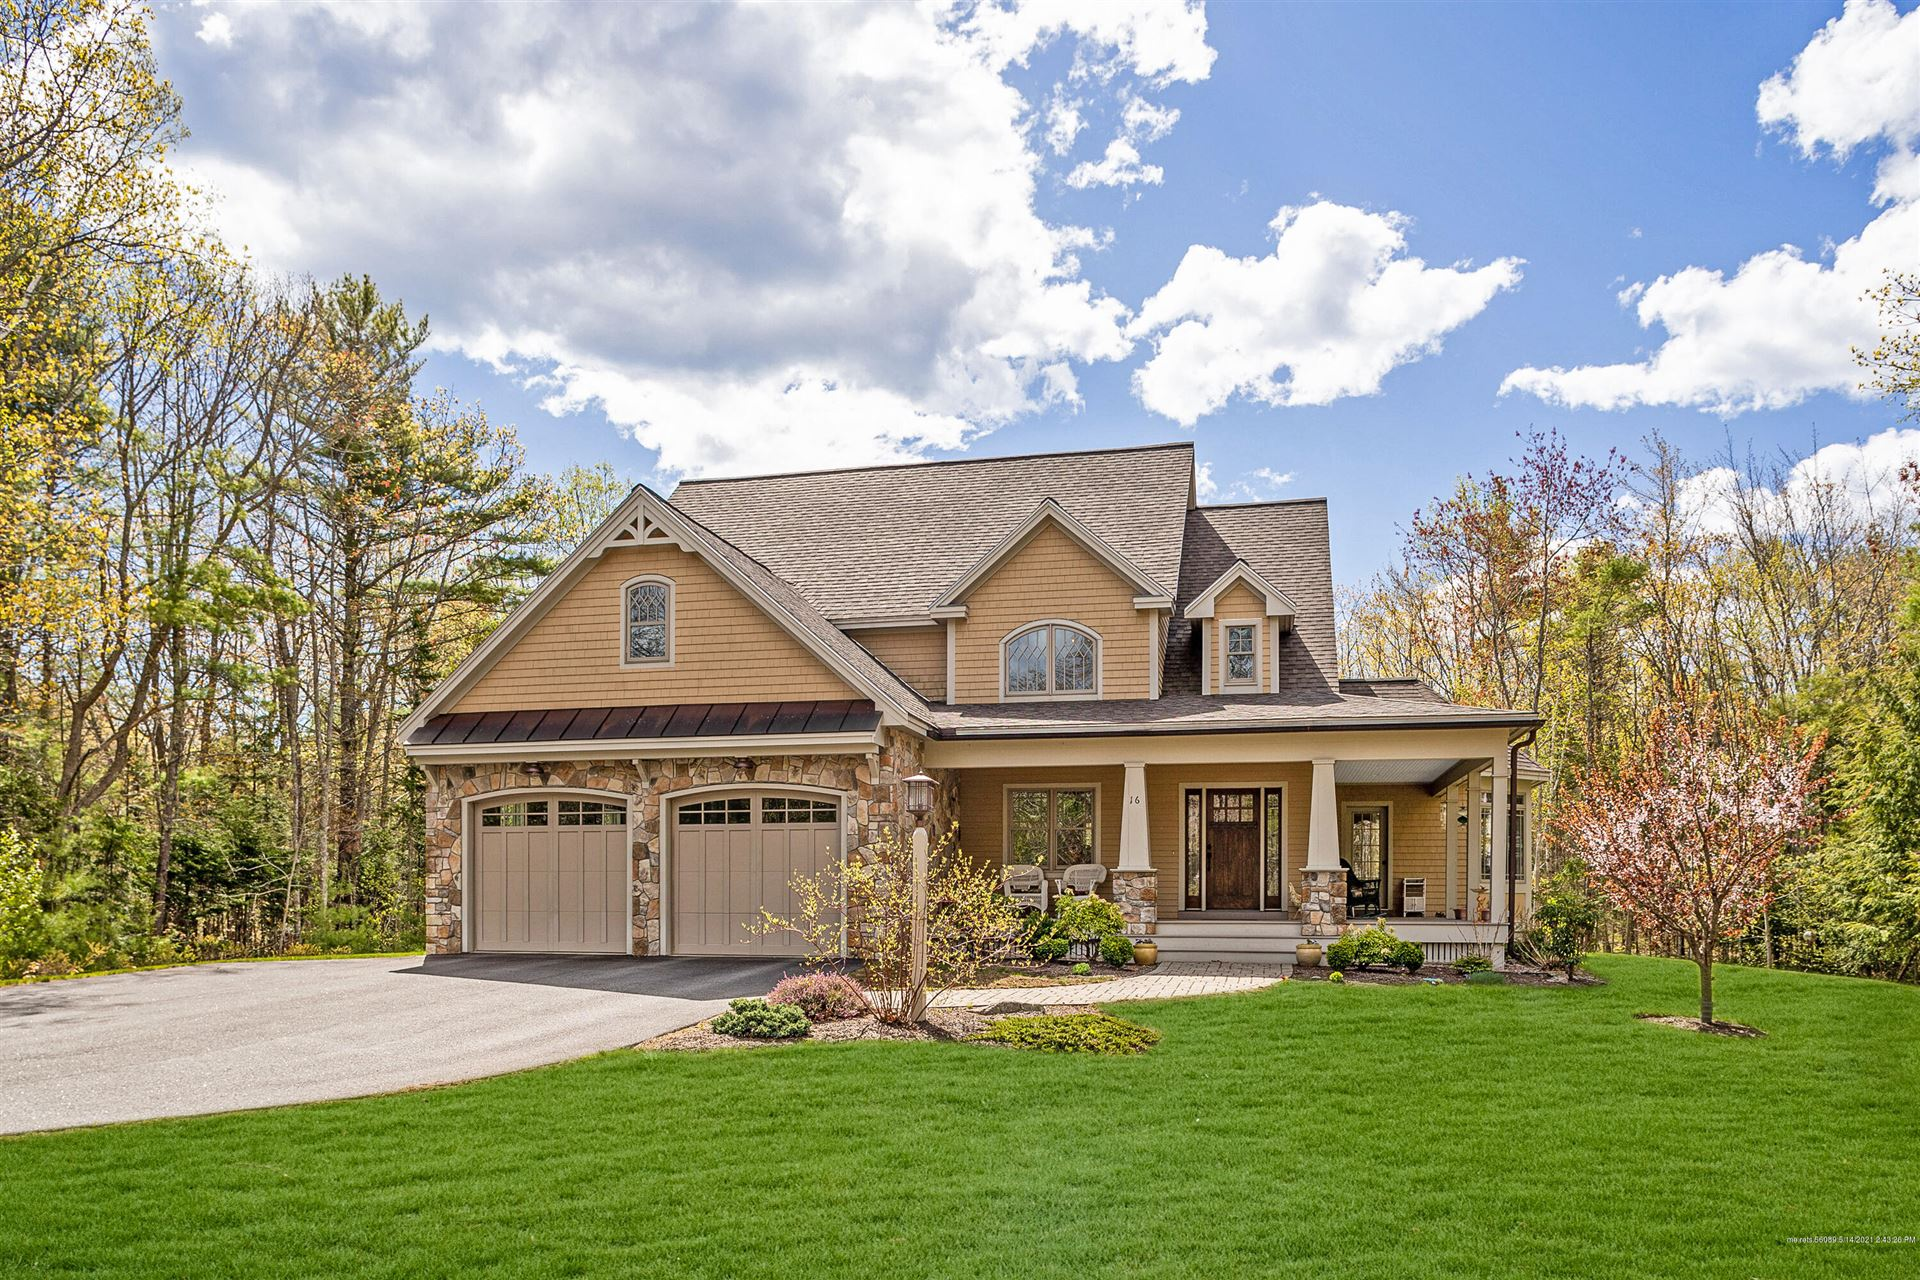 Photo of 16 Bailey Court, Kennebunkport, ME 04046 (MLS # 1491572)